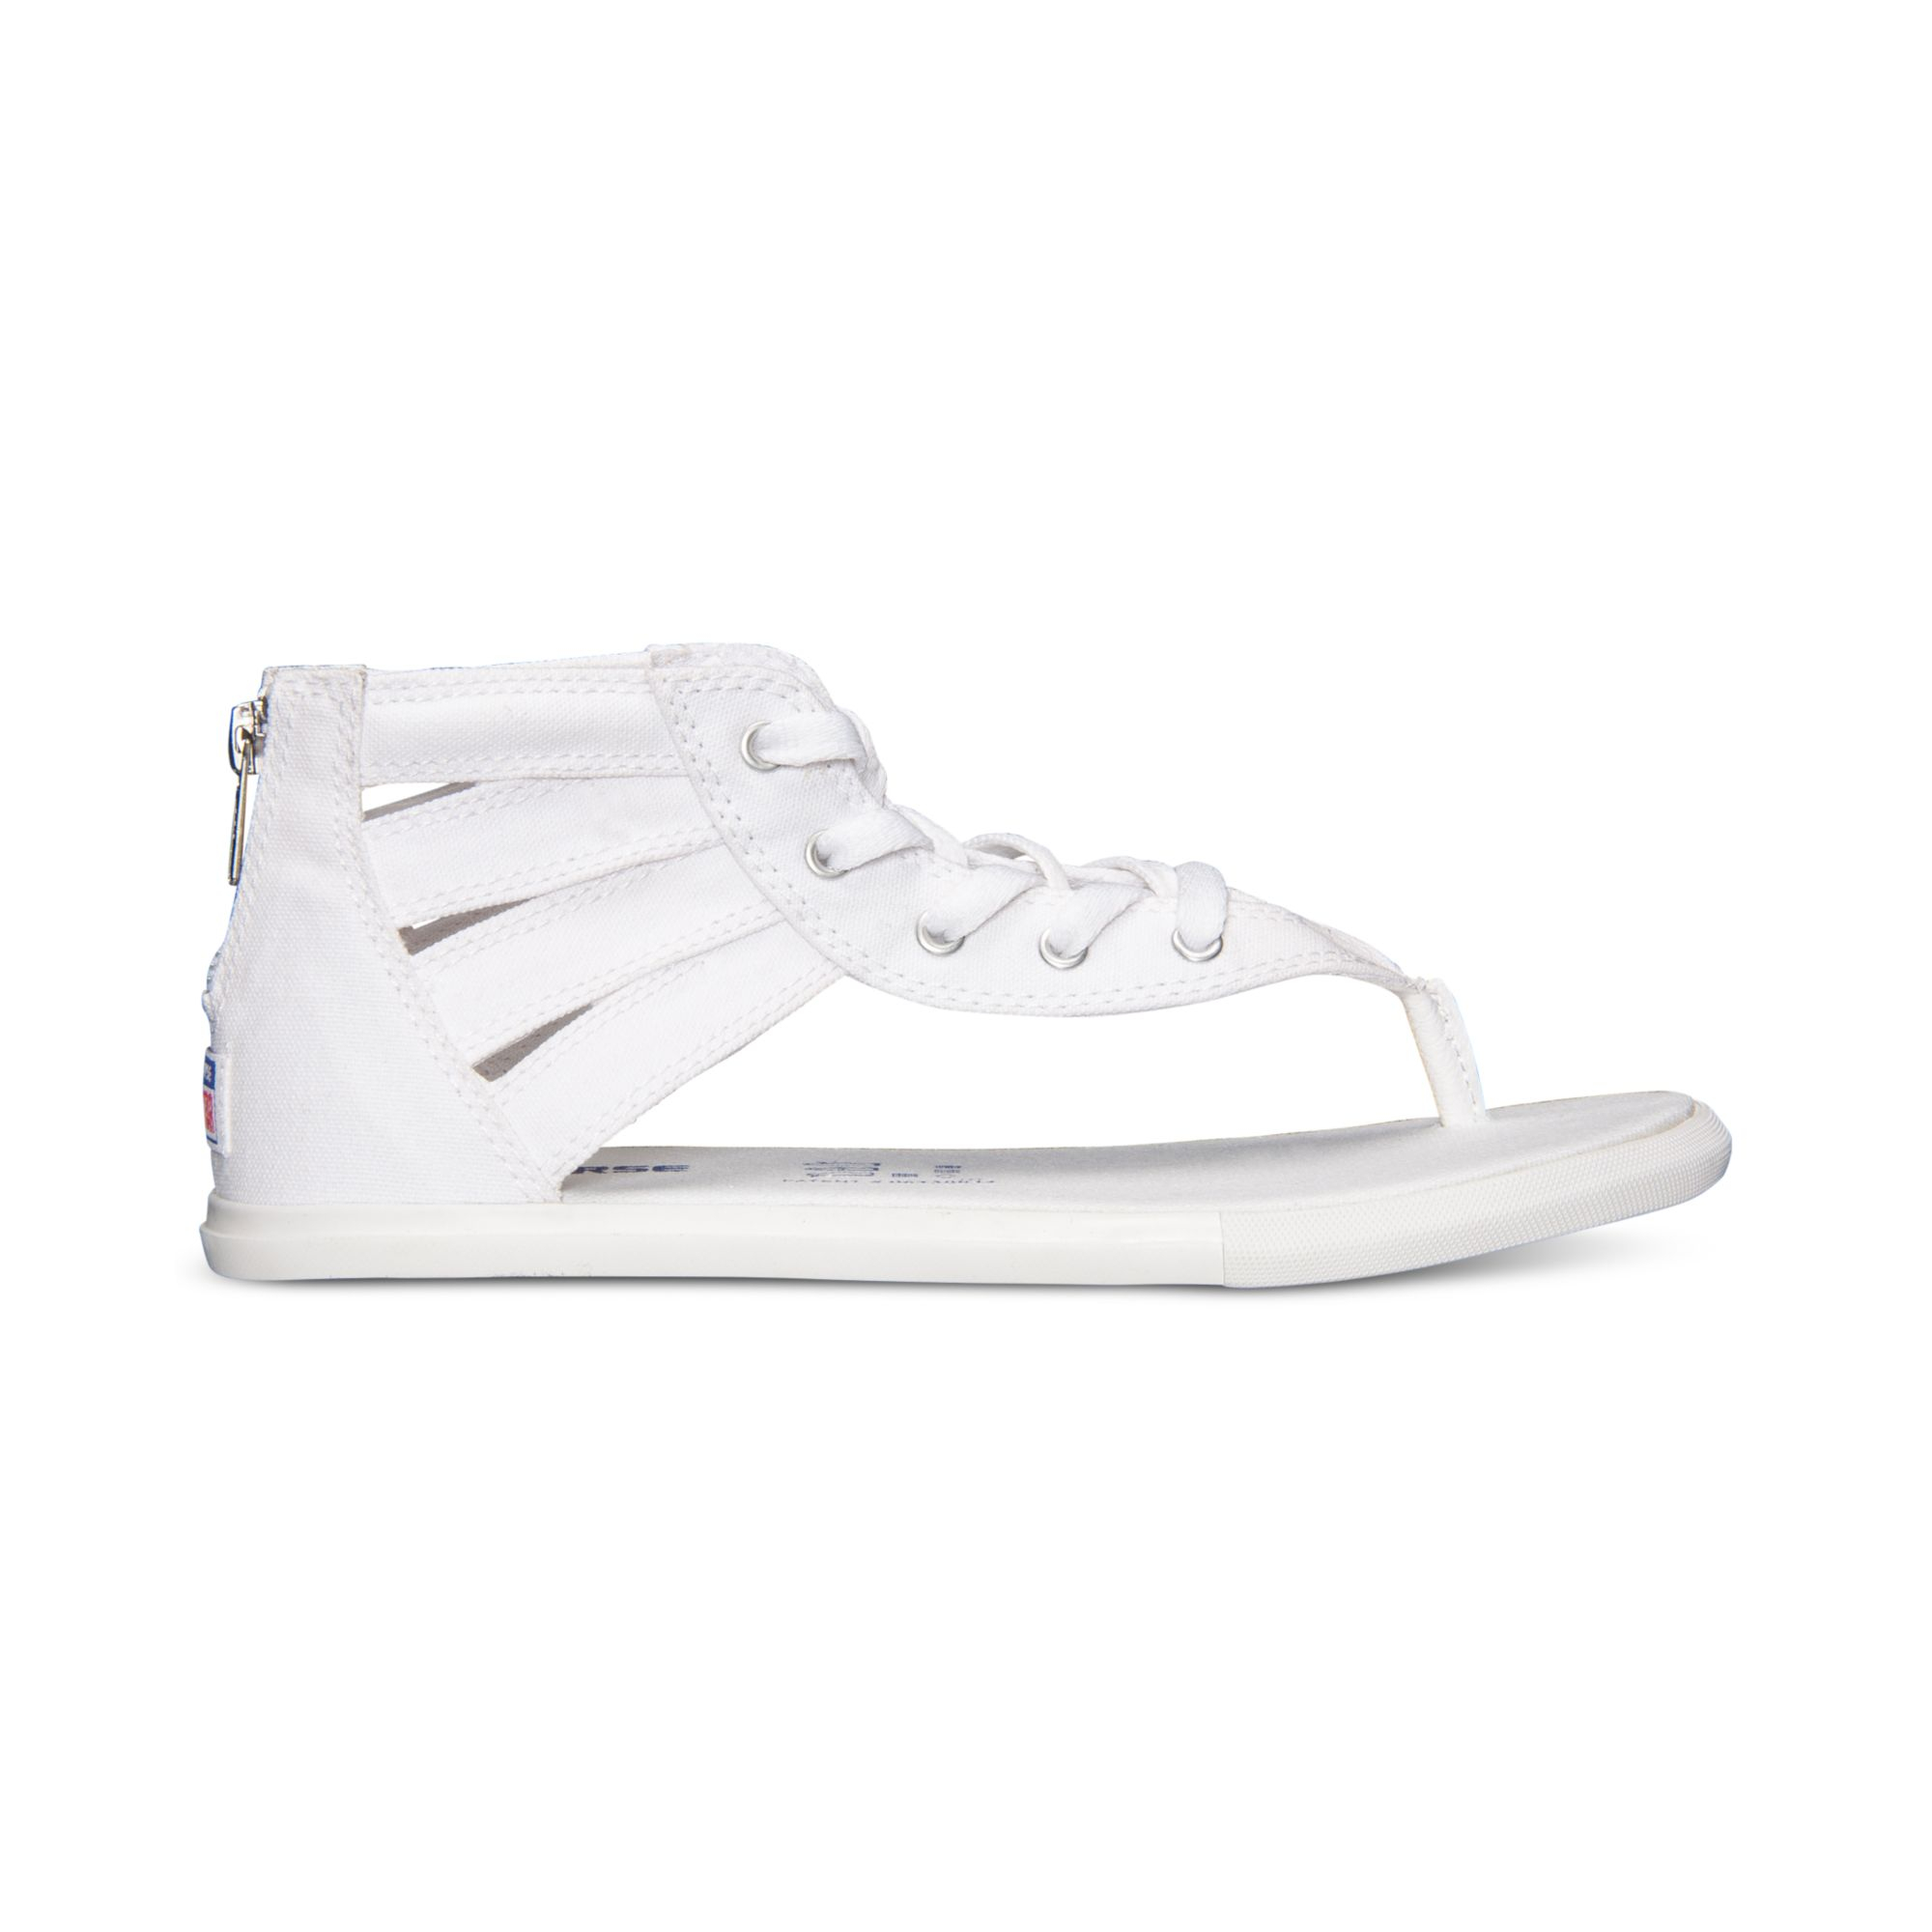 525bdefe300 Lyst - Converse Women s Chuck Taylor Gladiator Thong Sandals From ...